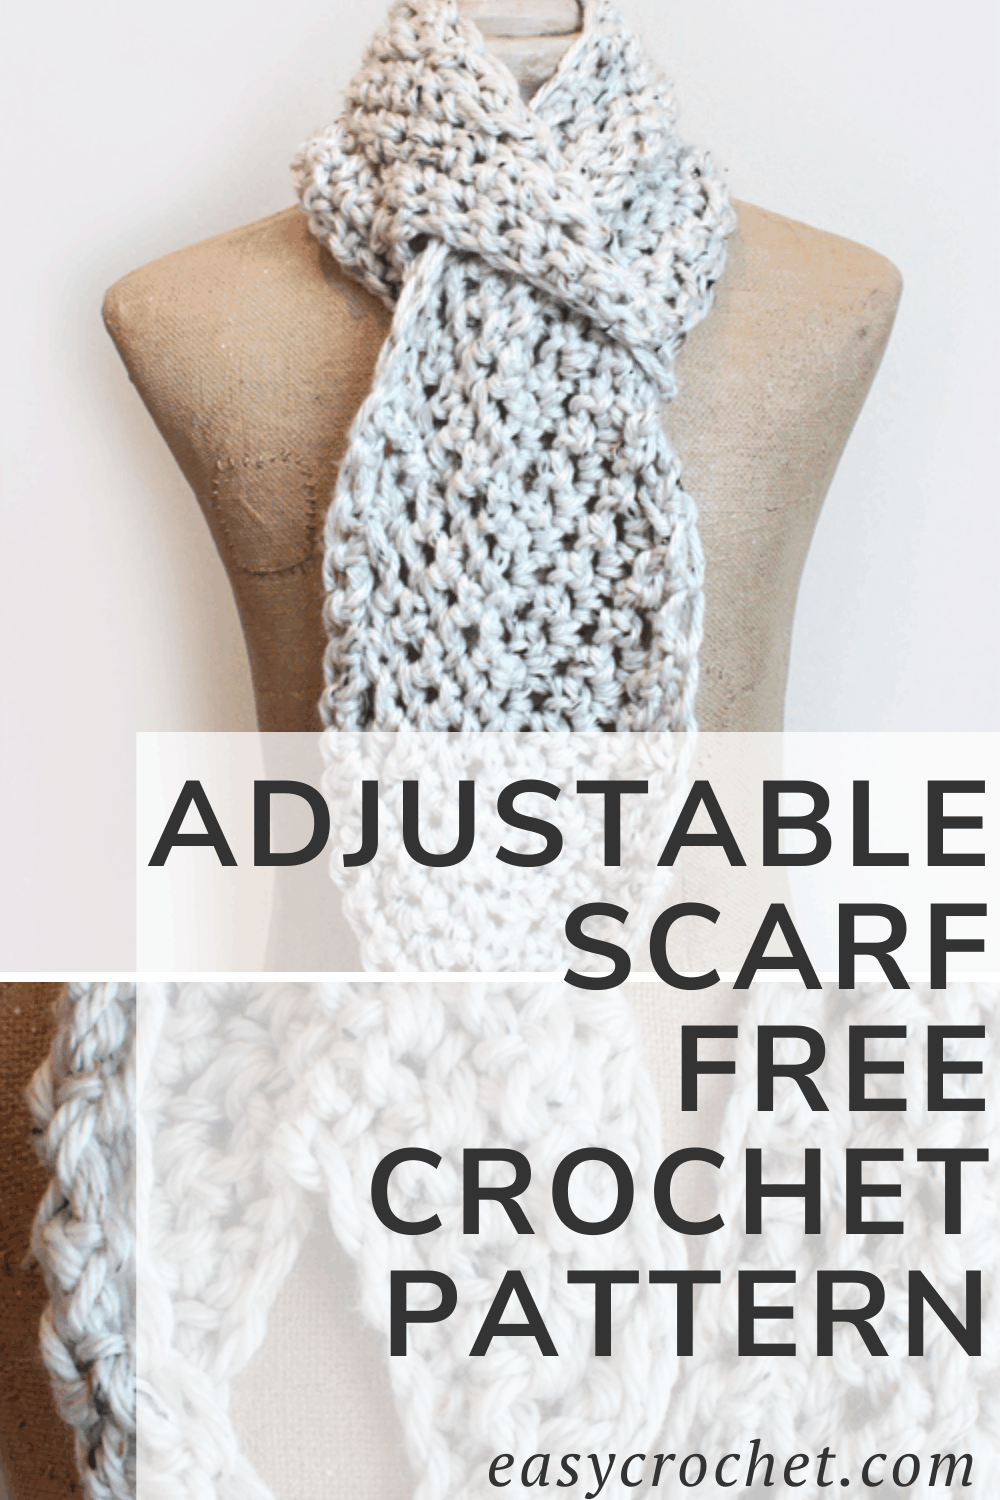 Adjustable crochet scarf pattern